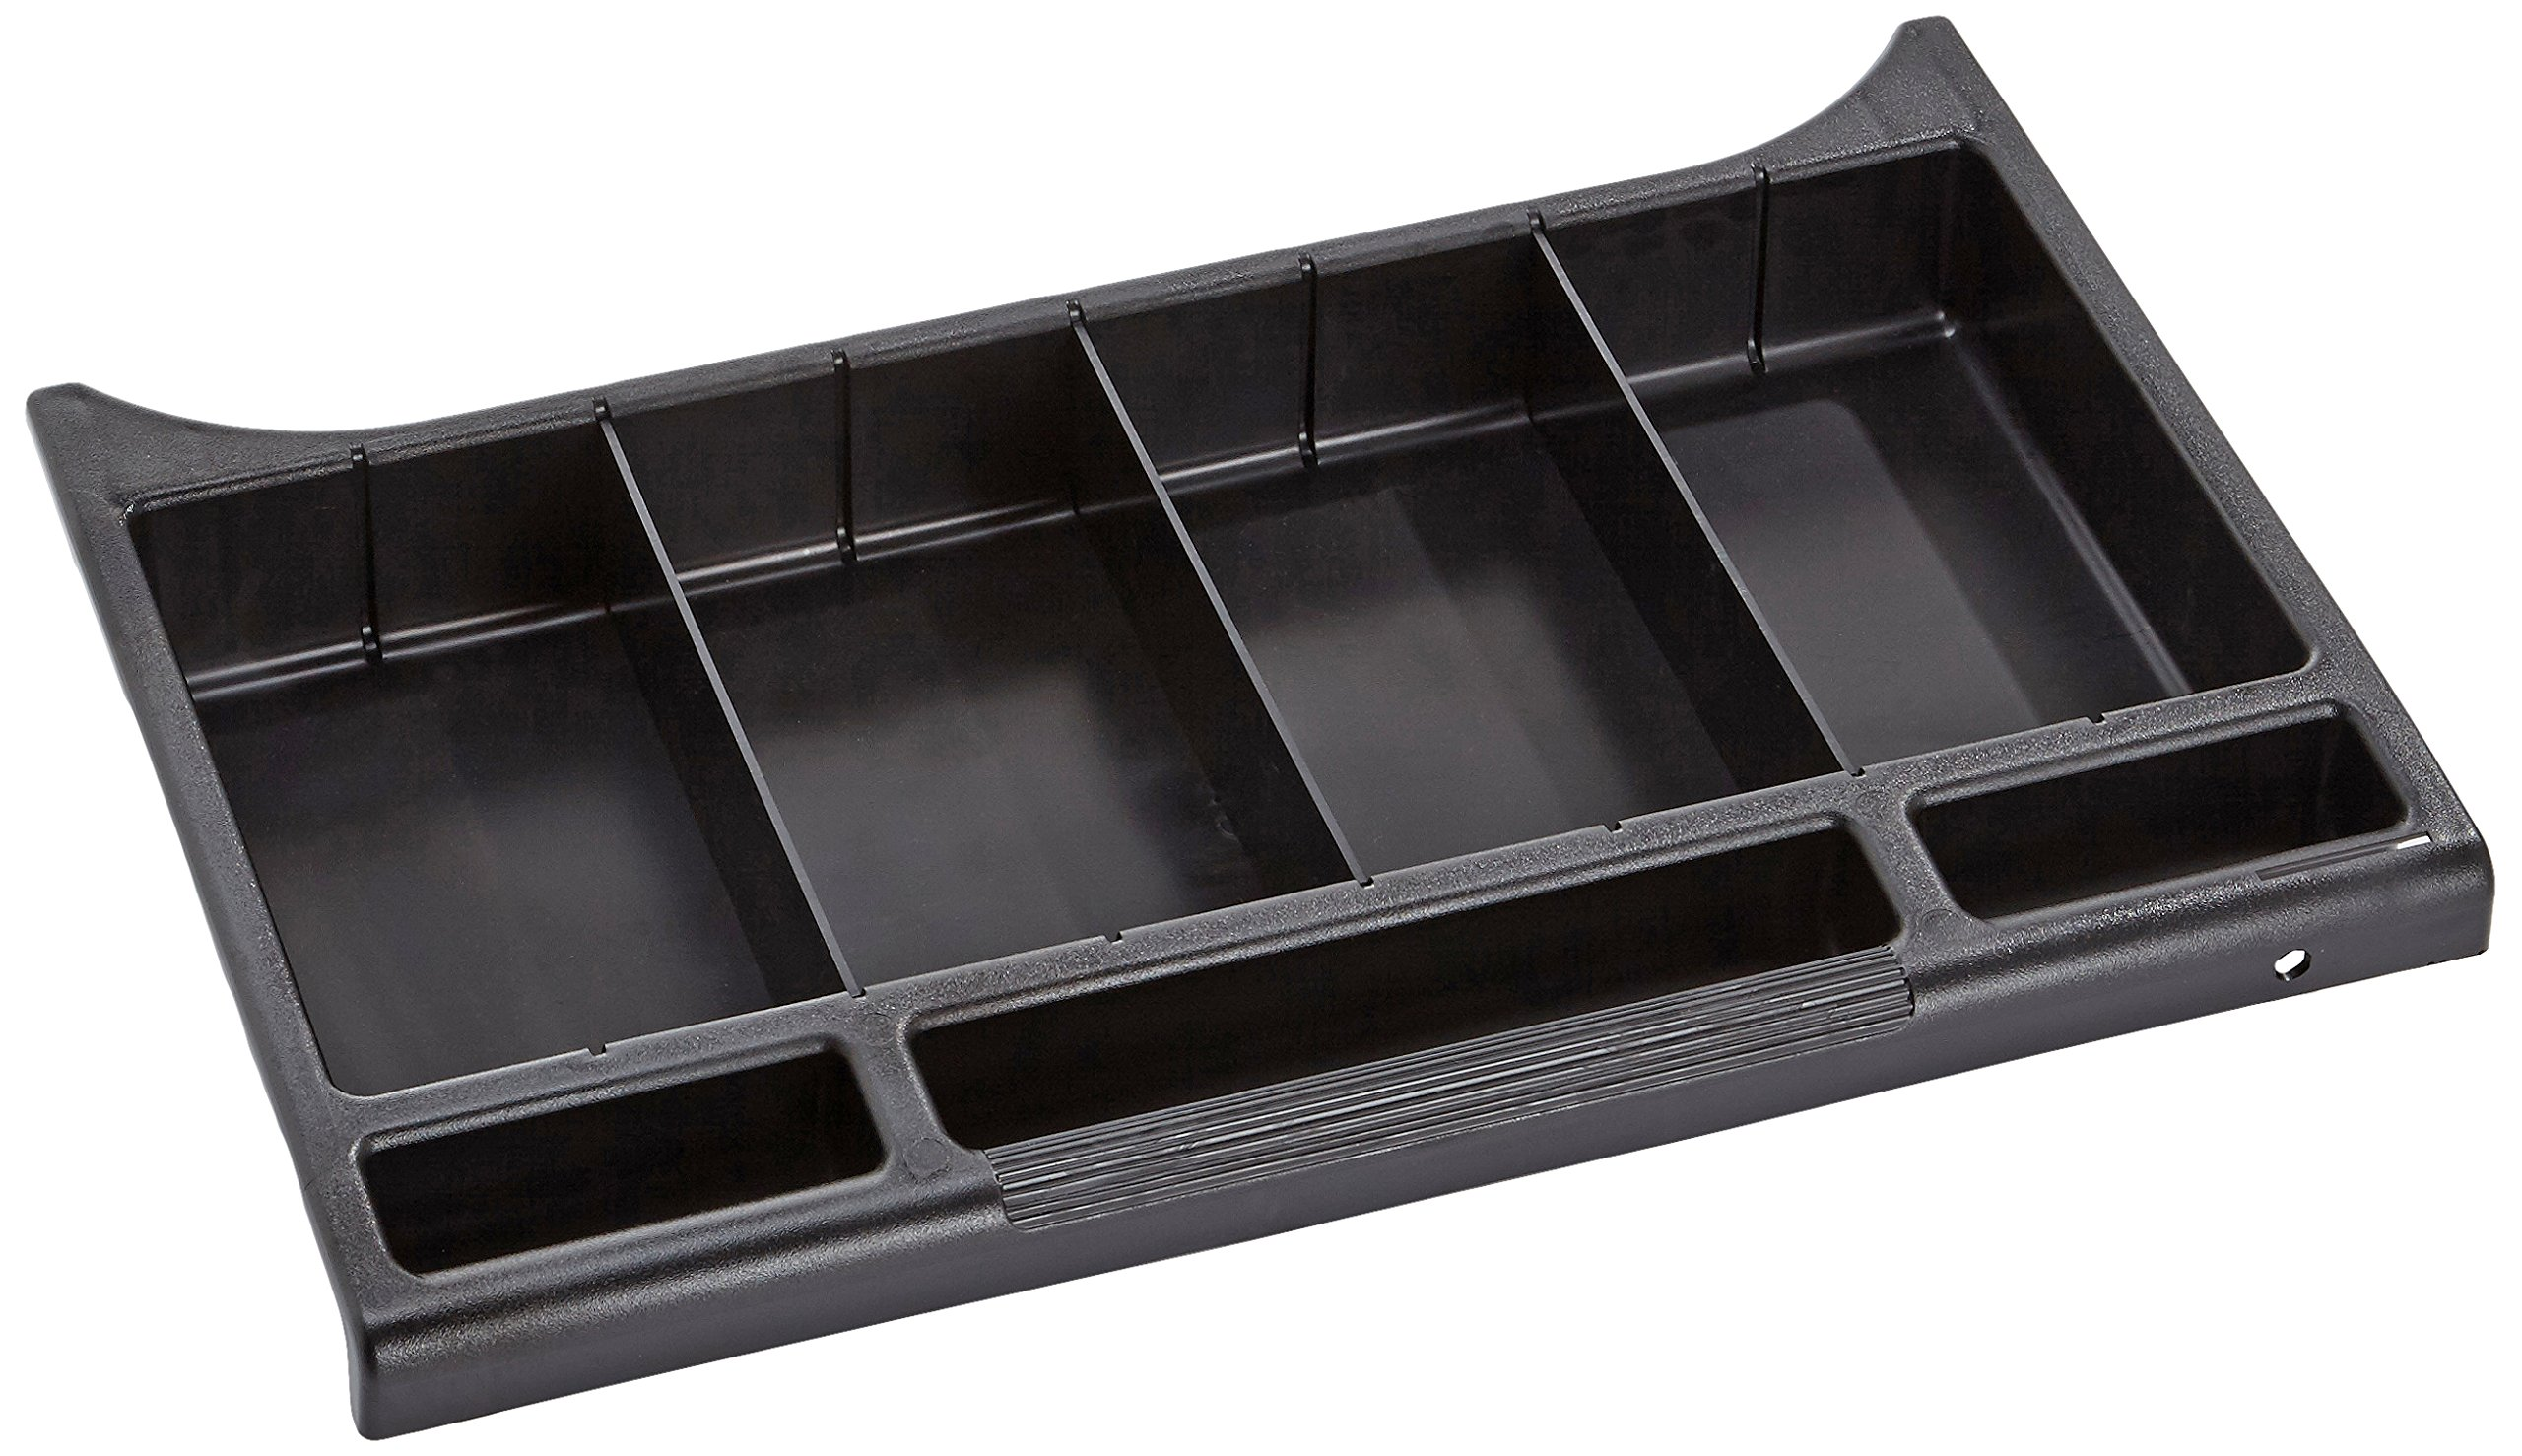 Rubbermaid Commercial Executive Series Locking Utility Drawer for Housekeeping Carts, Black